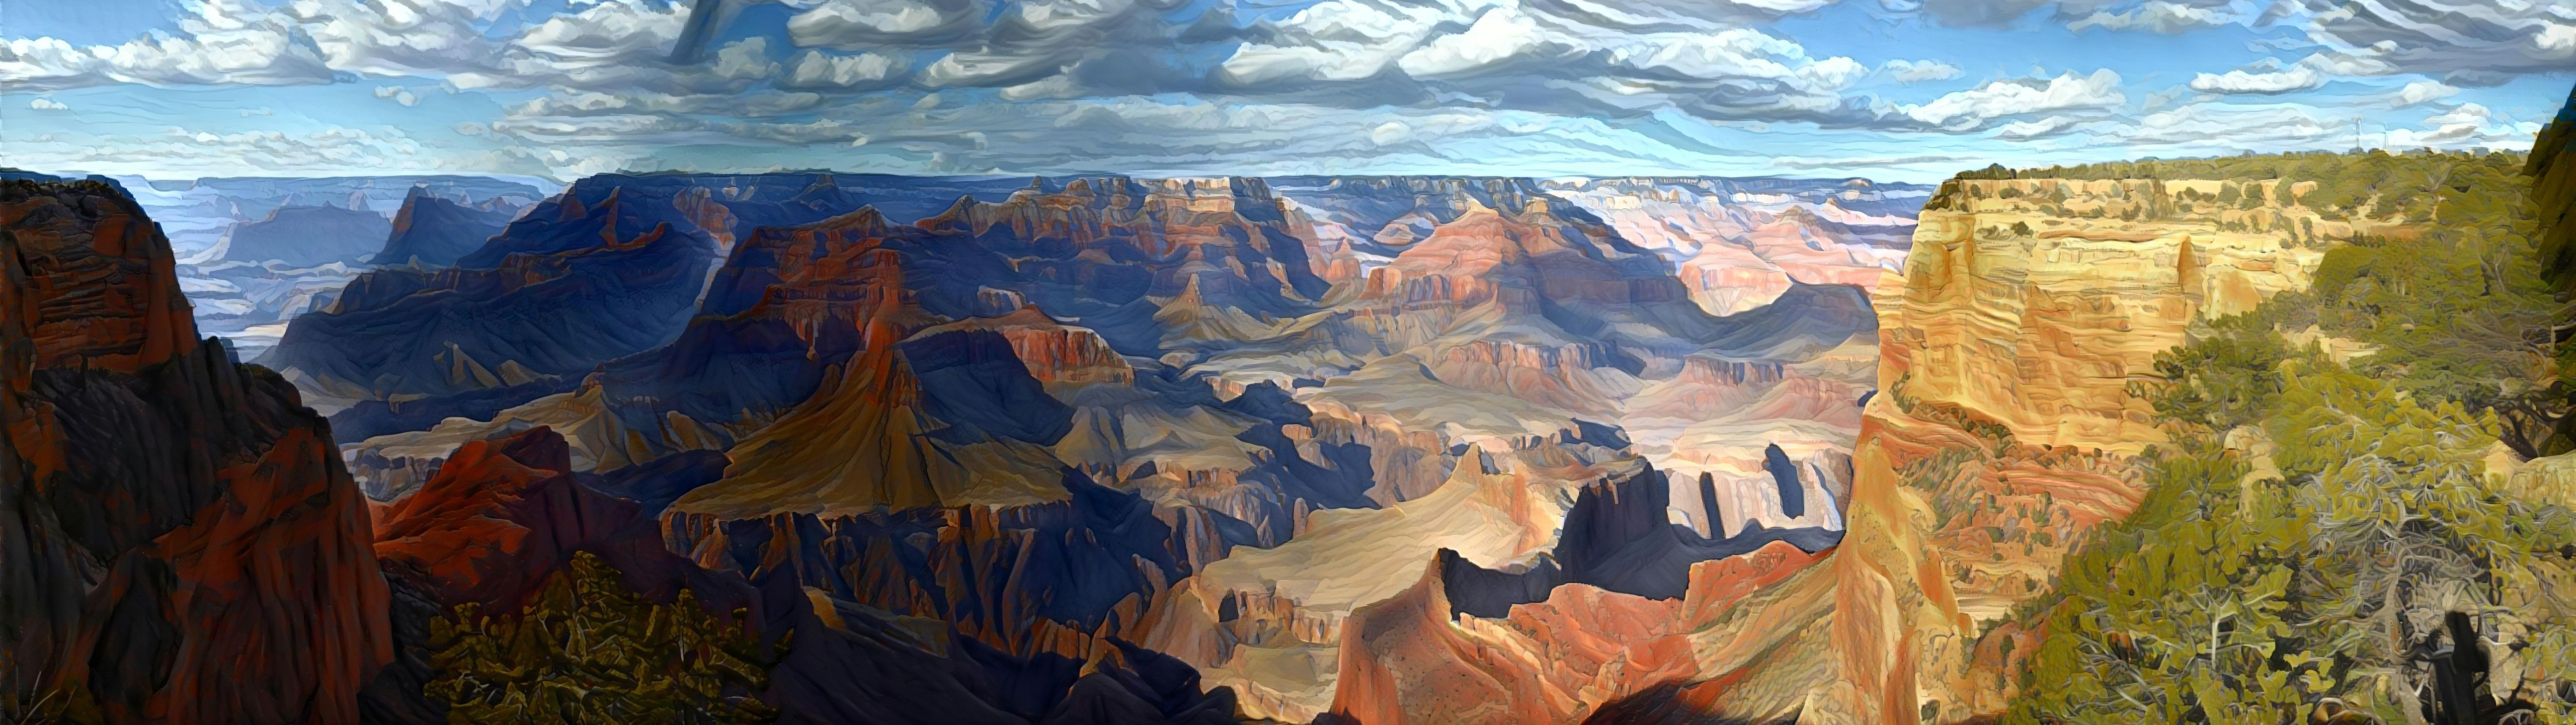 Grand Canyon Painting Wallpaper